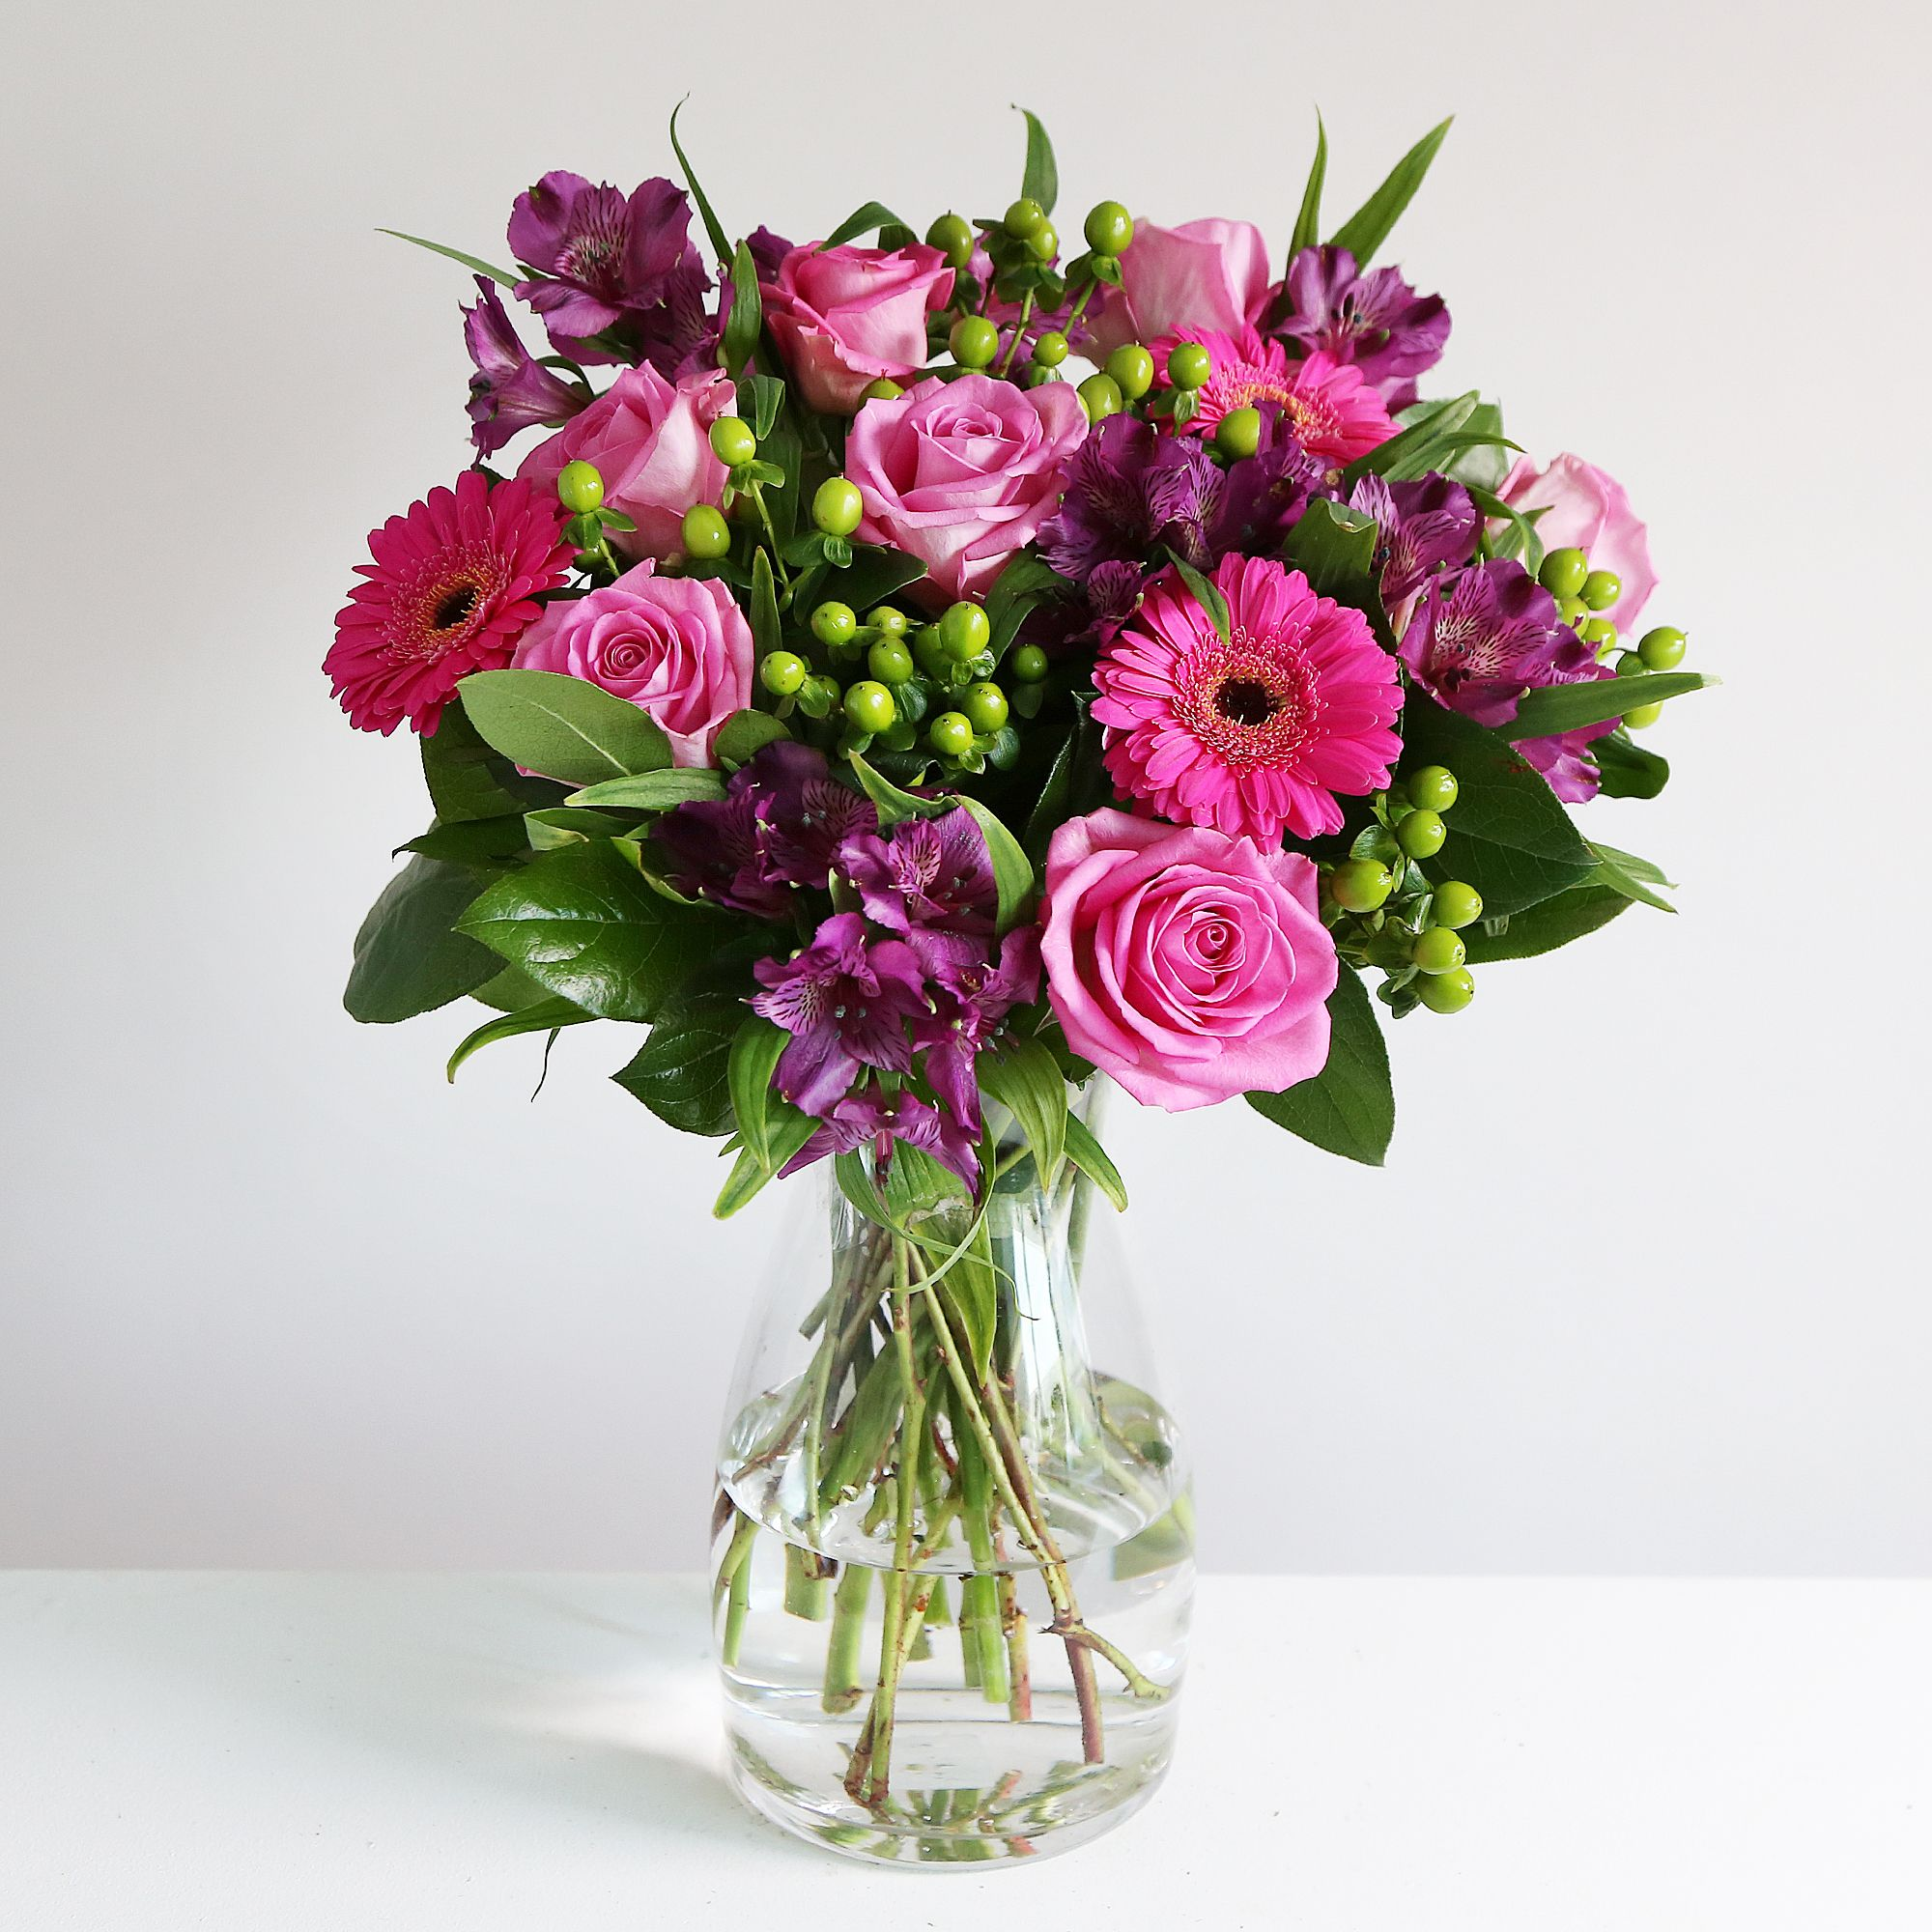 Crazy For You Bouquet This Sassy Bouquet Combines Vibrant Shades